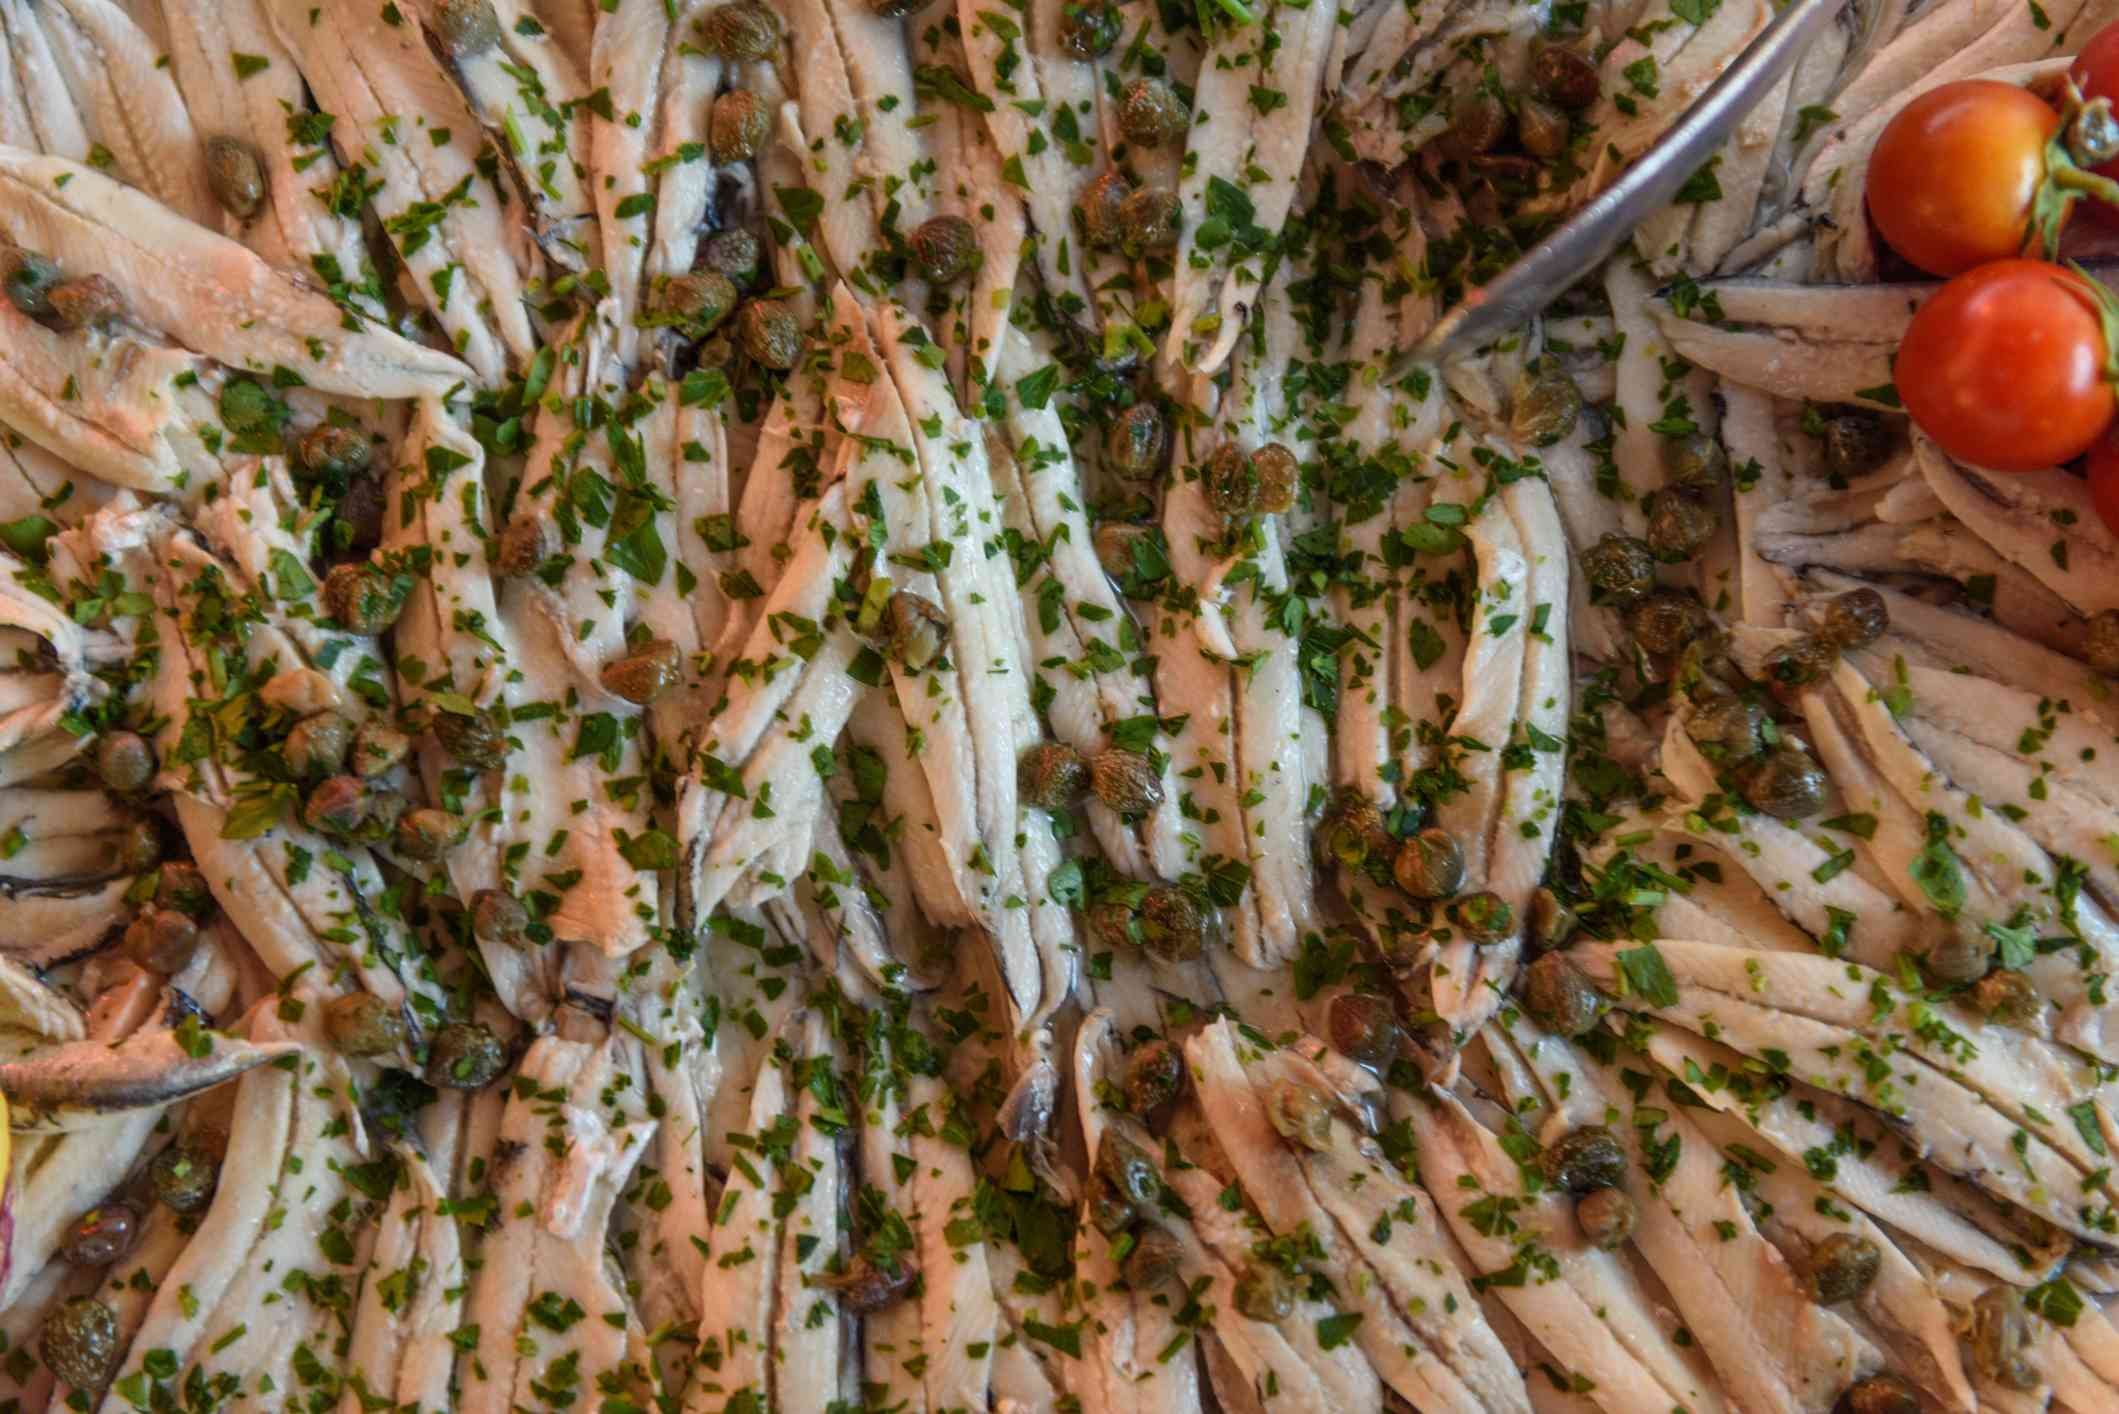 Close-up of a plate of marinated anchovies